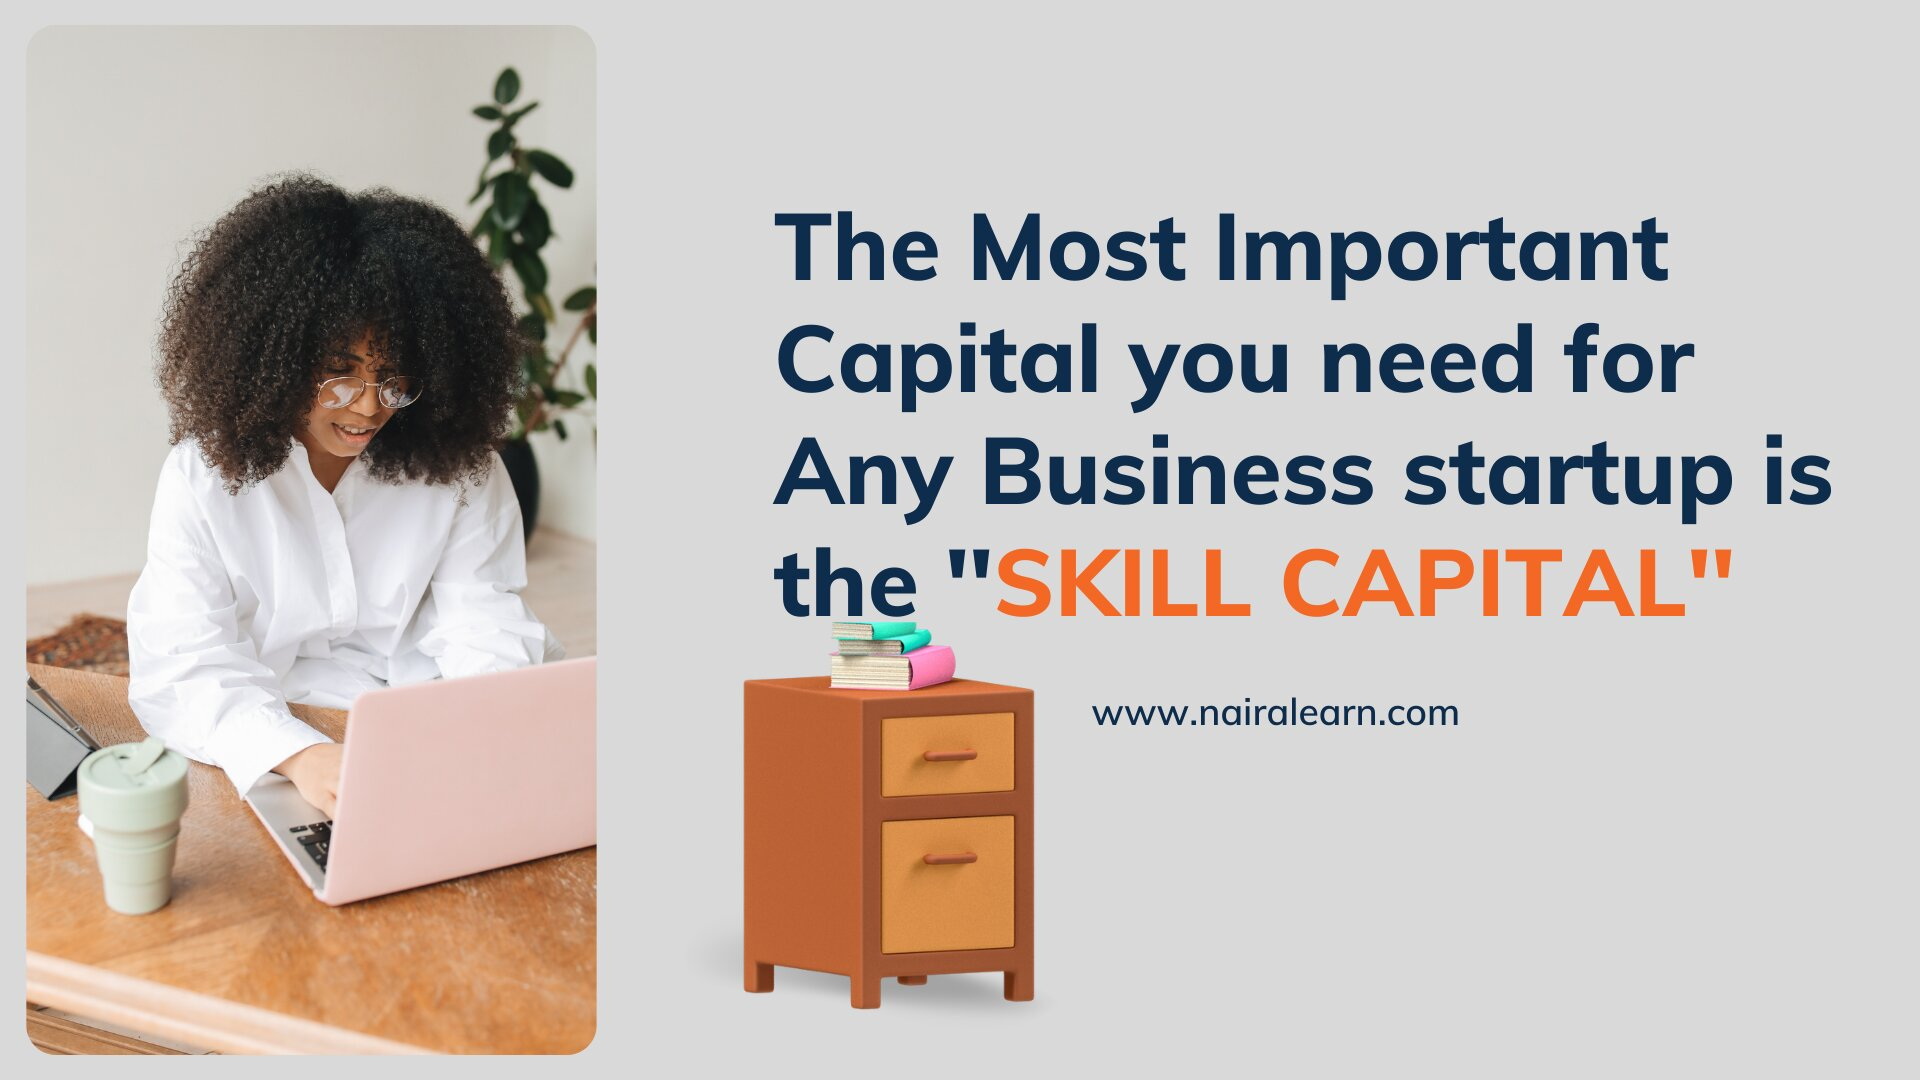 The Most Important Capital you need for Any Business startup is SKILL CAPITAL